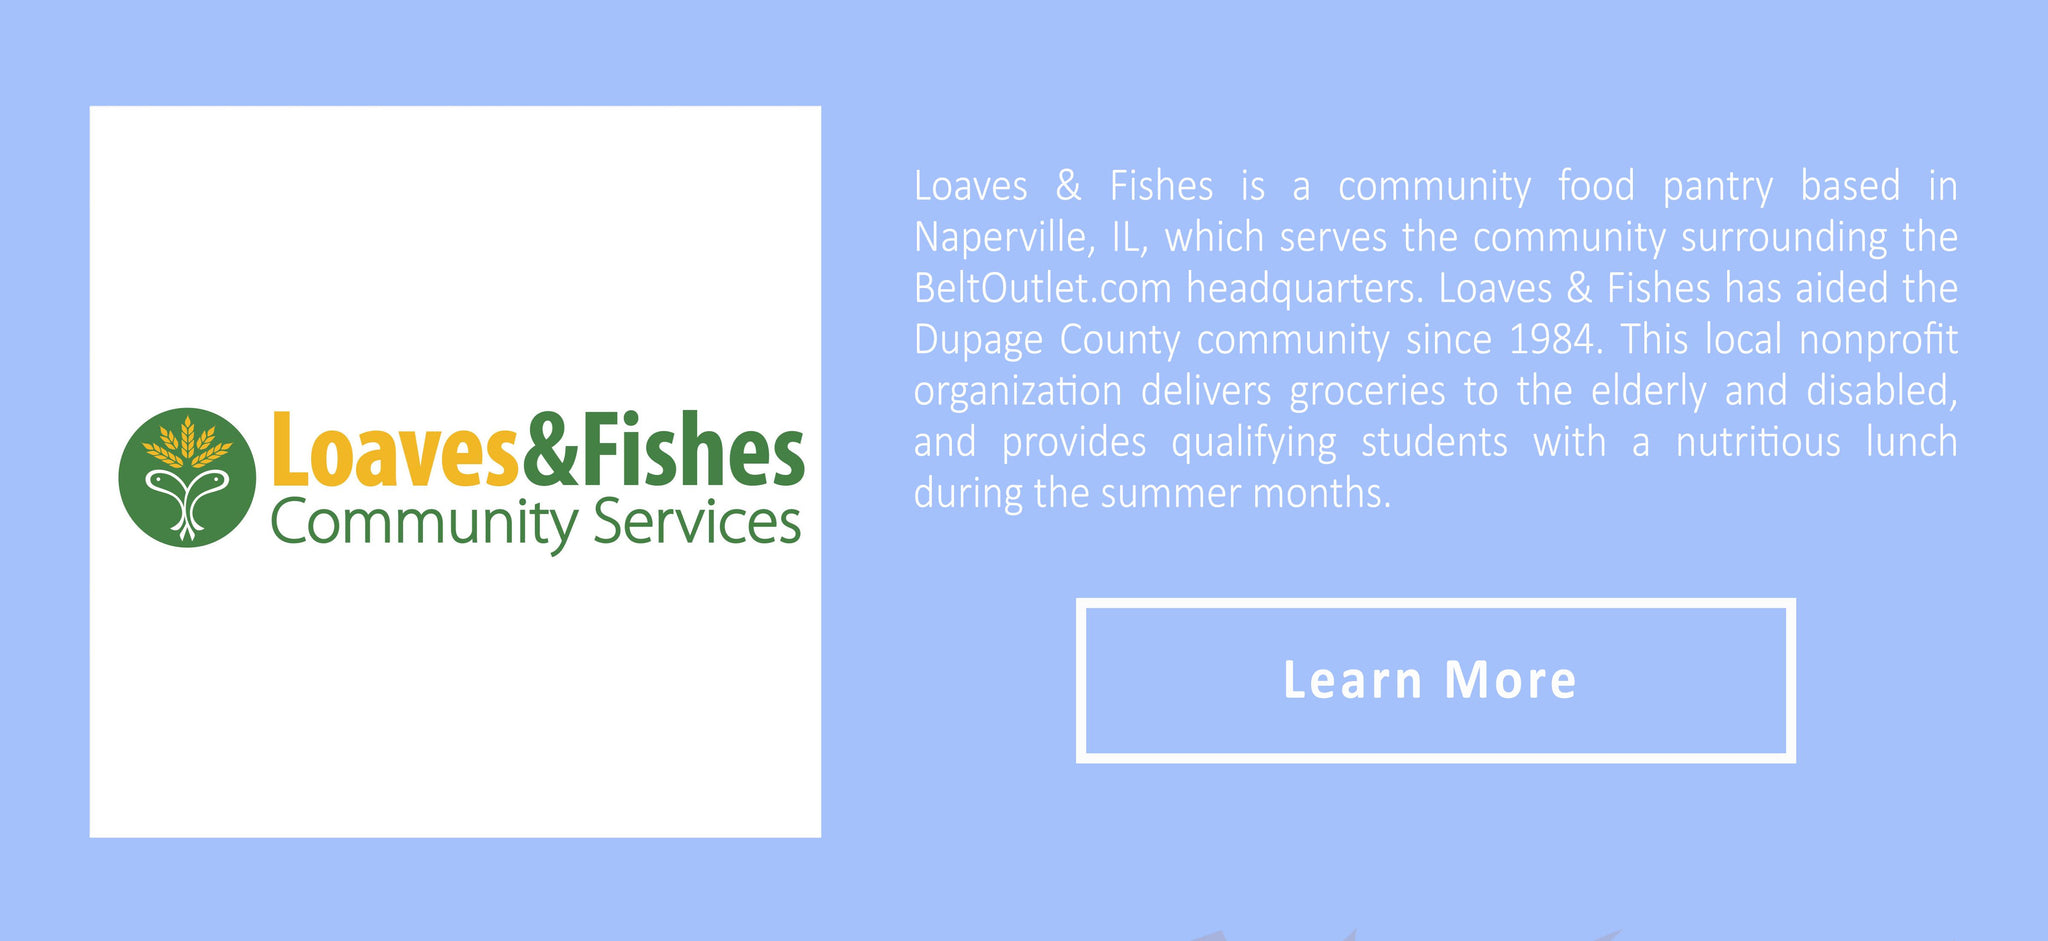 Loaves&fishes naperville logo and description